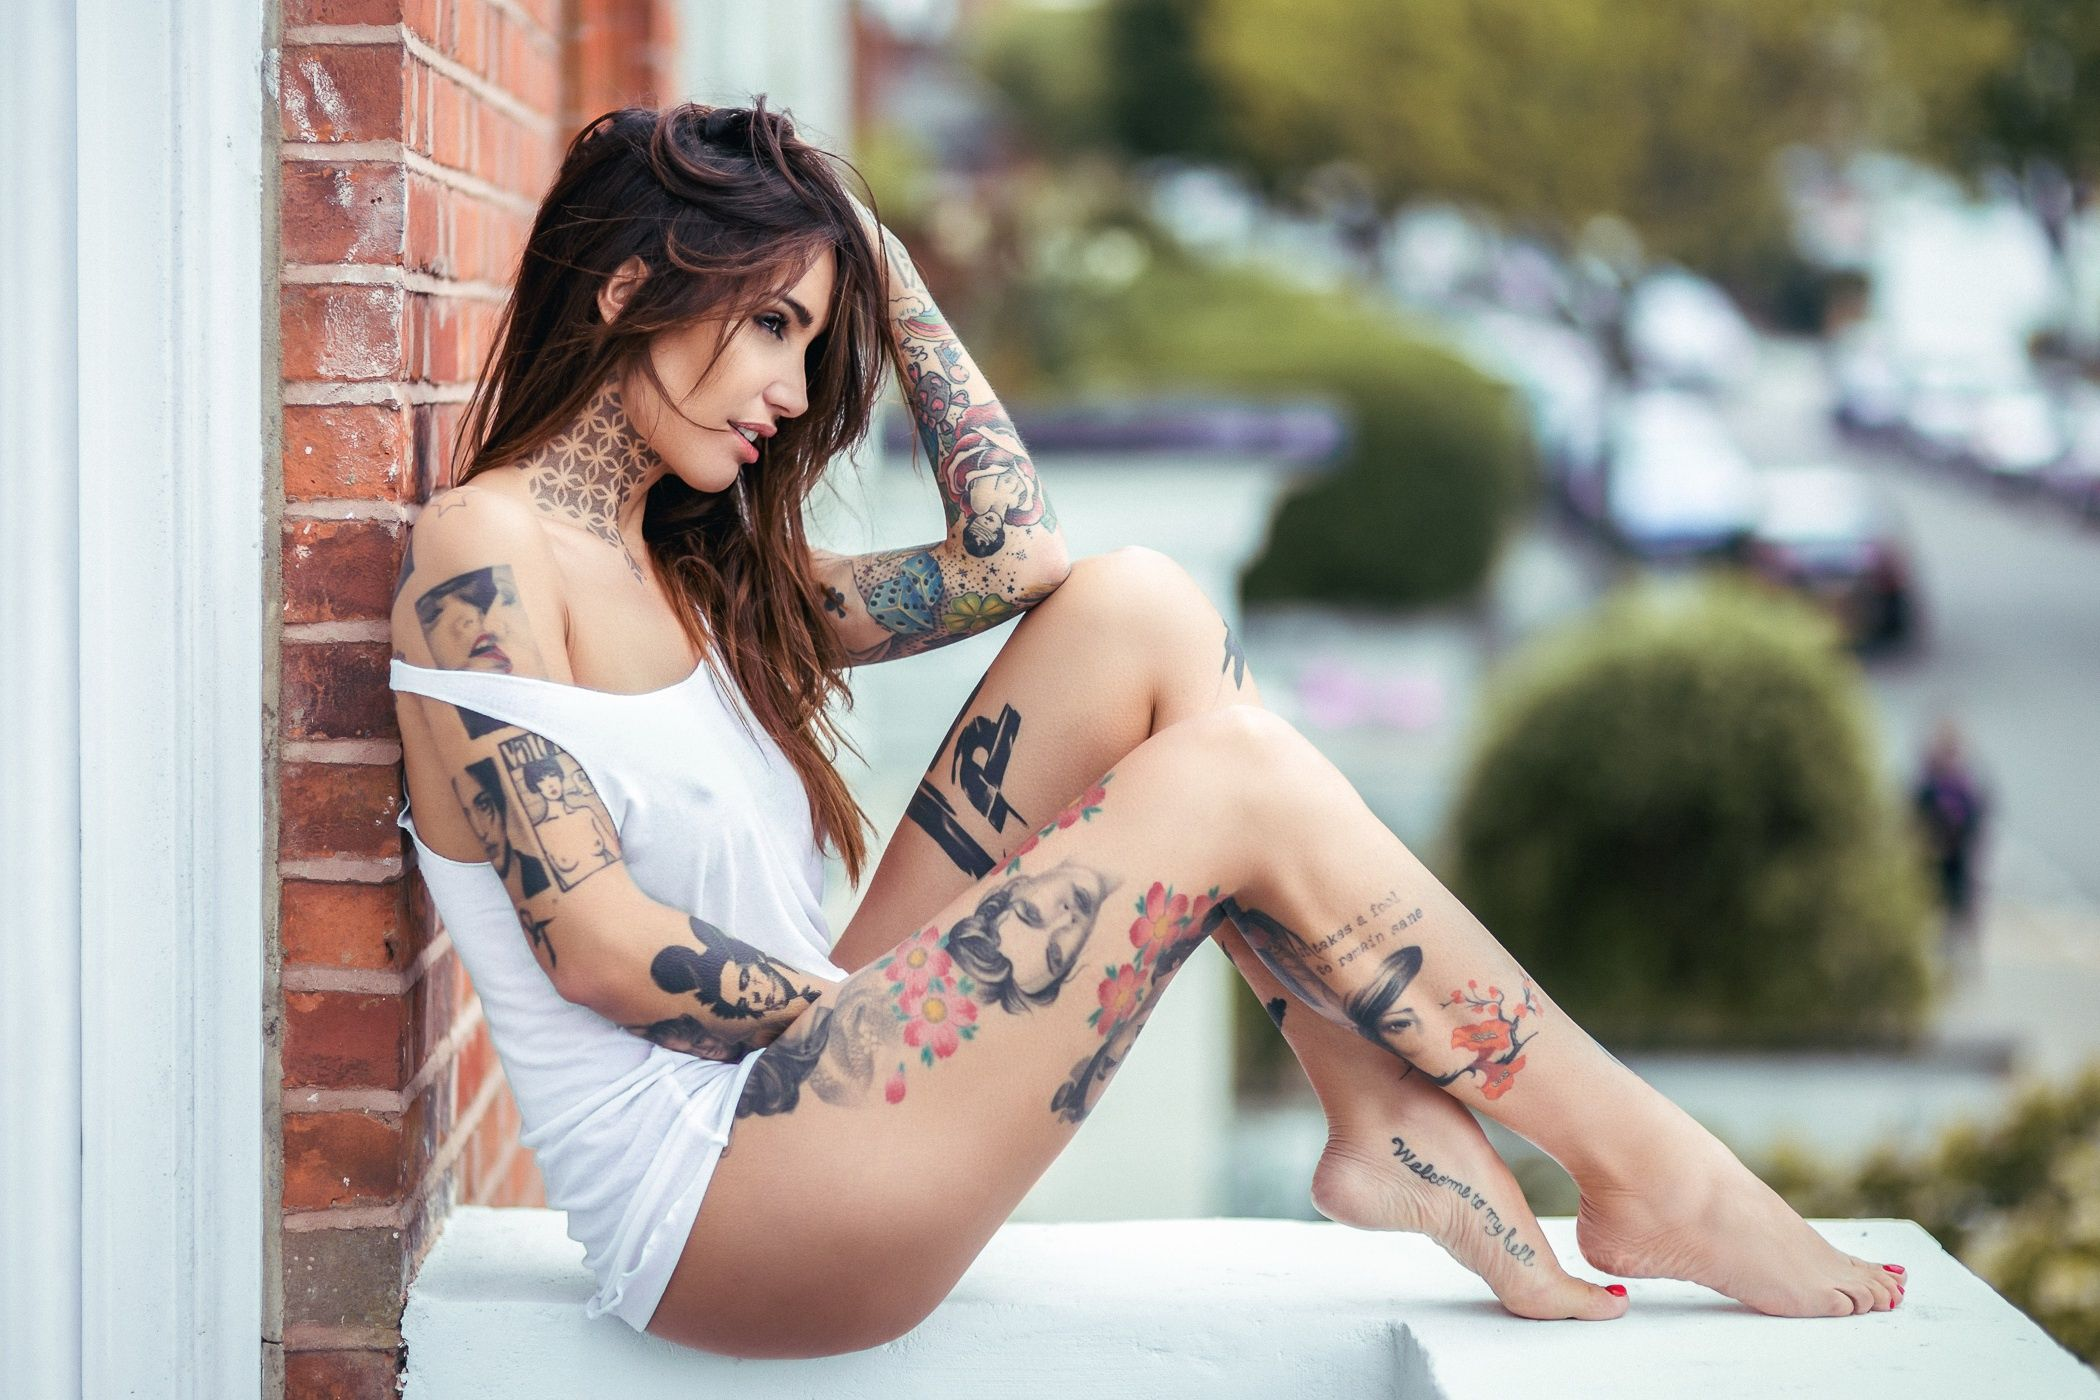 tumblr-girls-with-tattoos-asian-ass-dildo-hole-hot-shemale